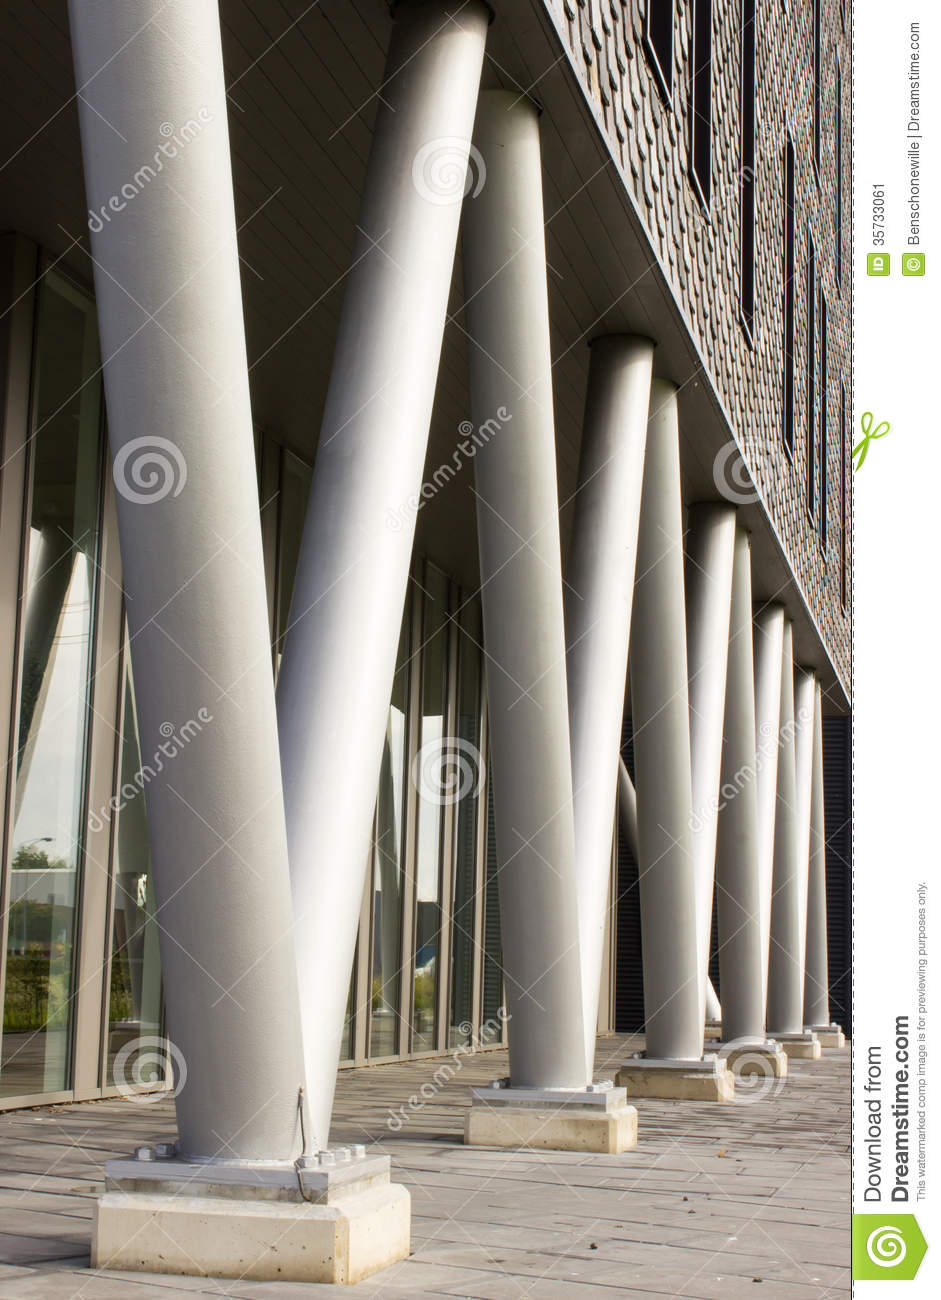 Black Metal Pillar Building : Building on pillars stock image of column